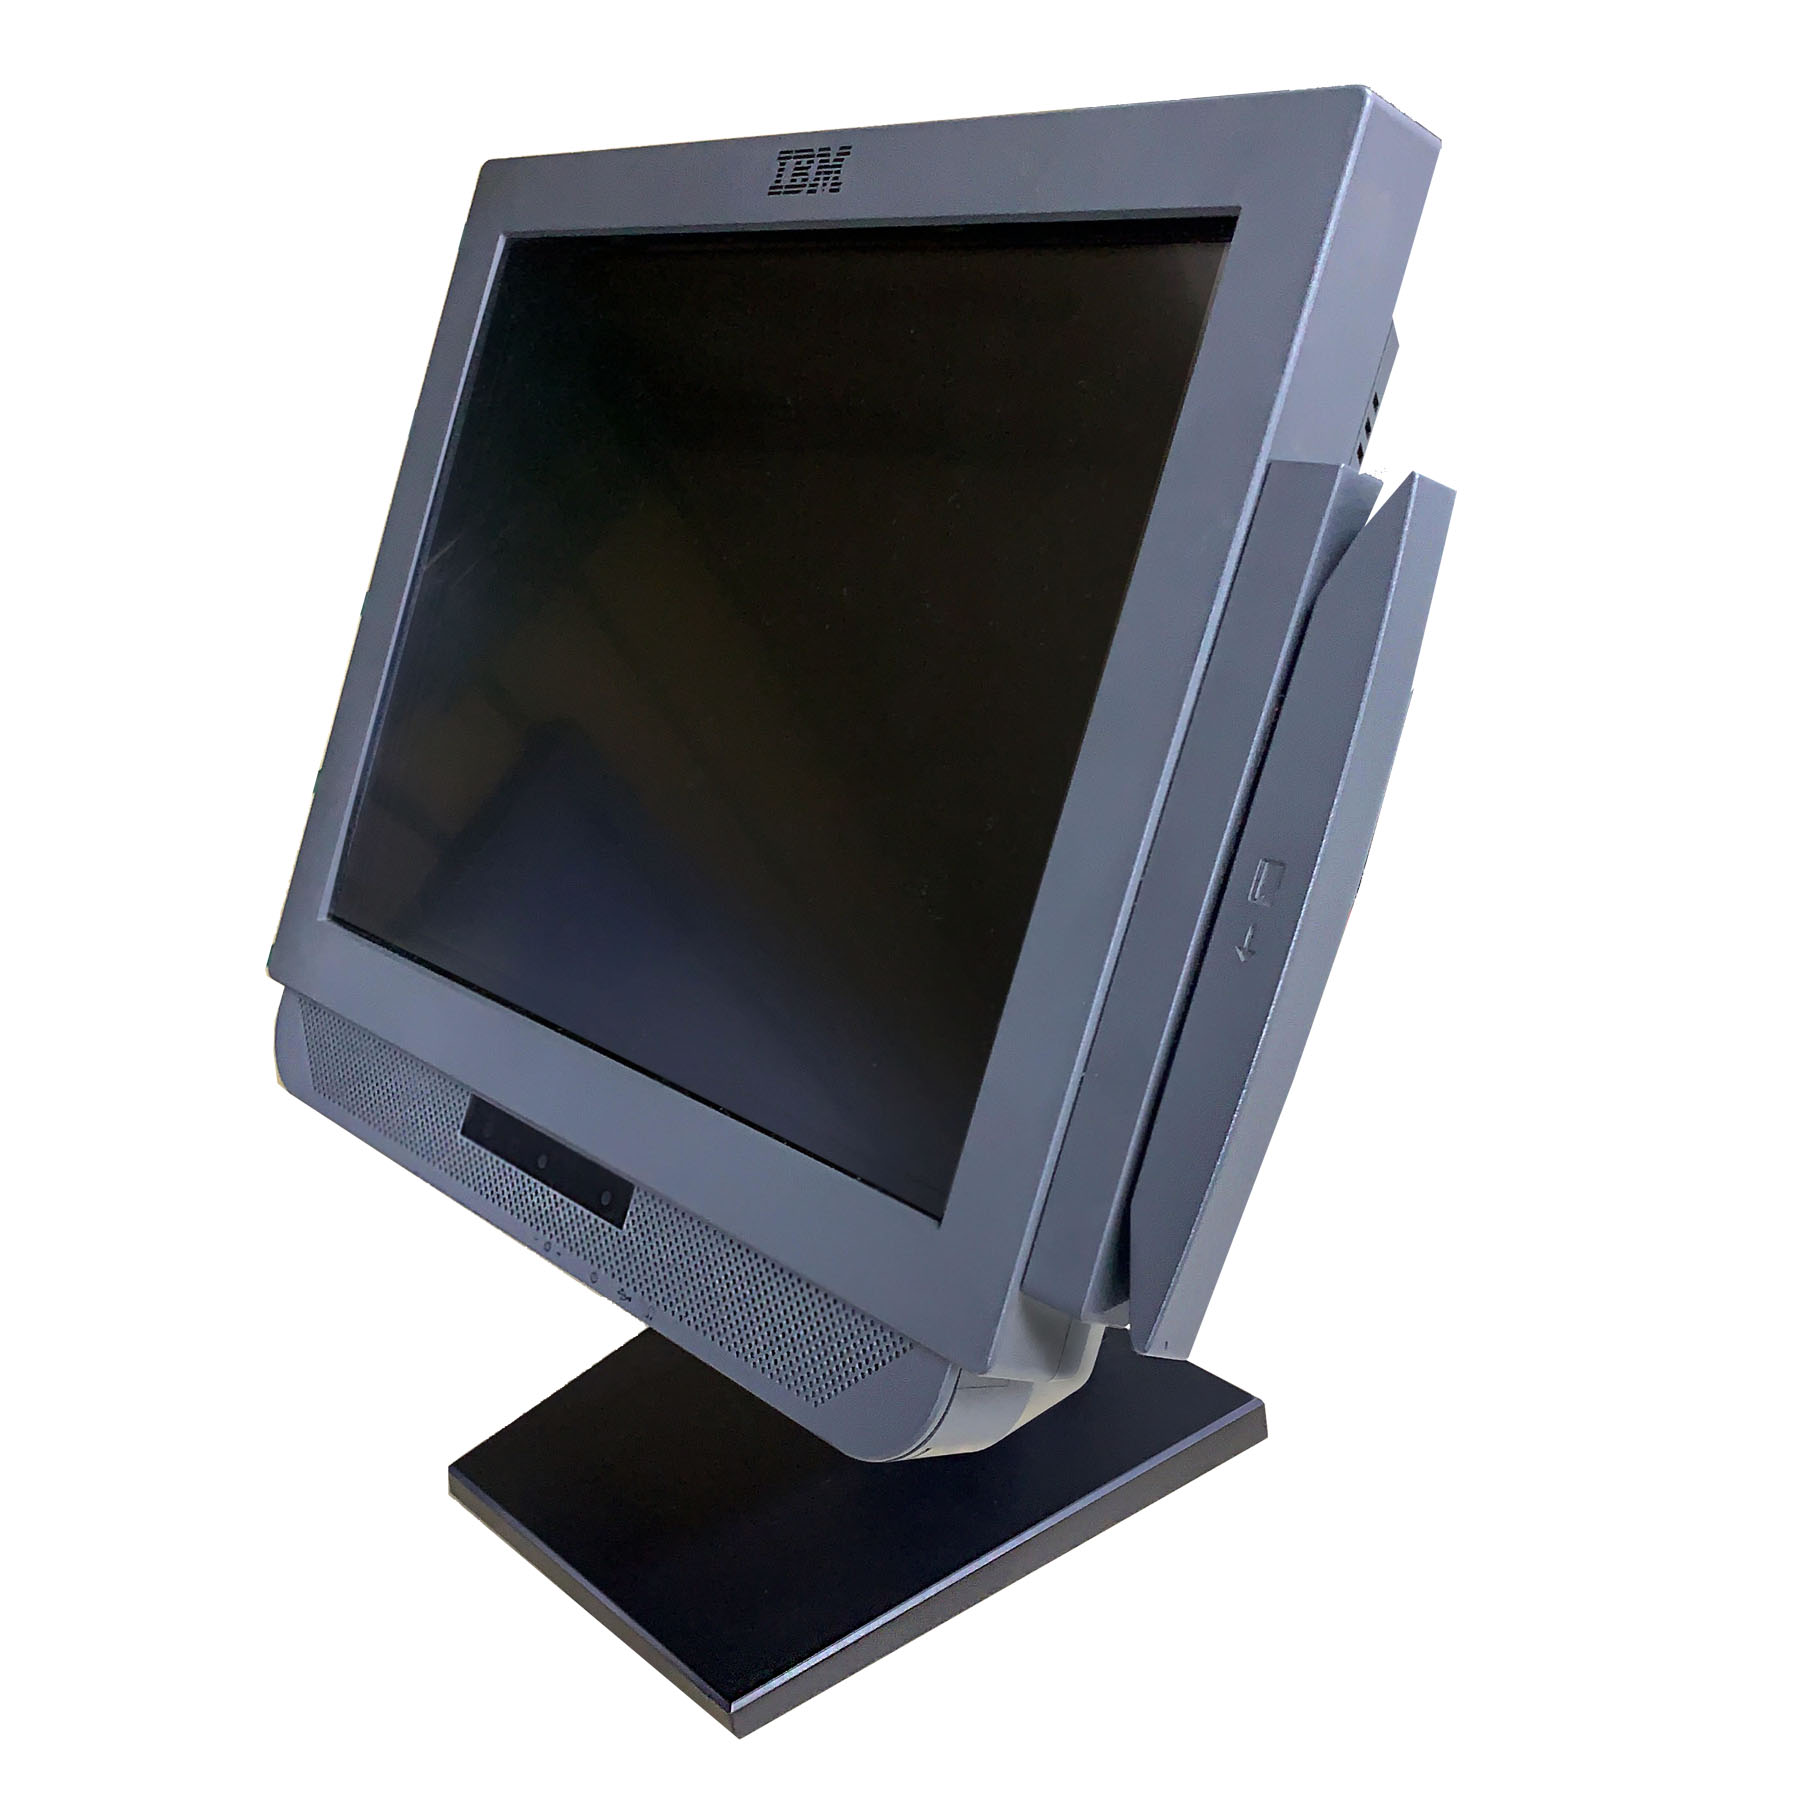 Ibm Pos 4838-52e All In One Touch Used Base Nueva